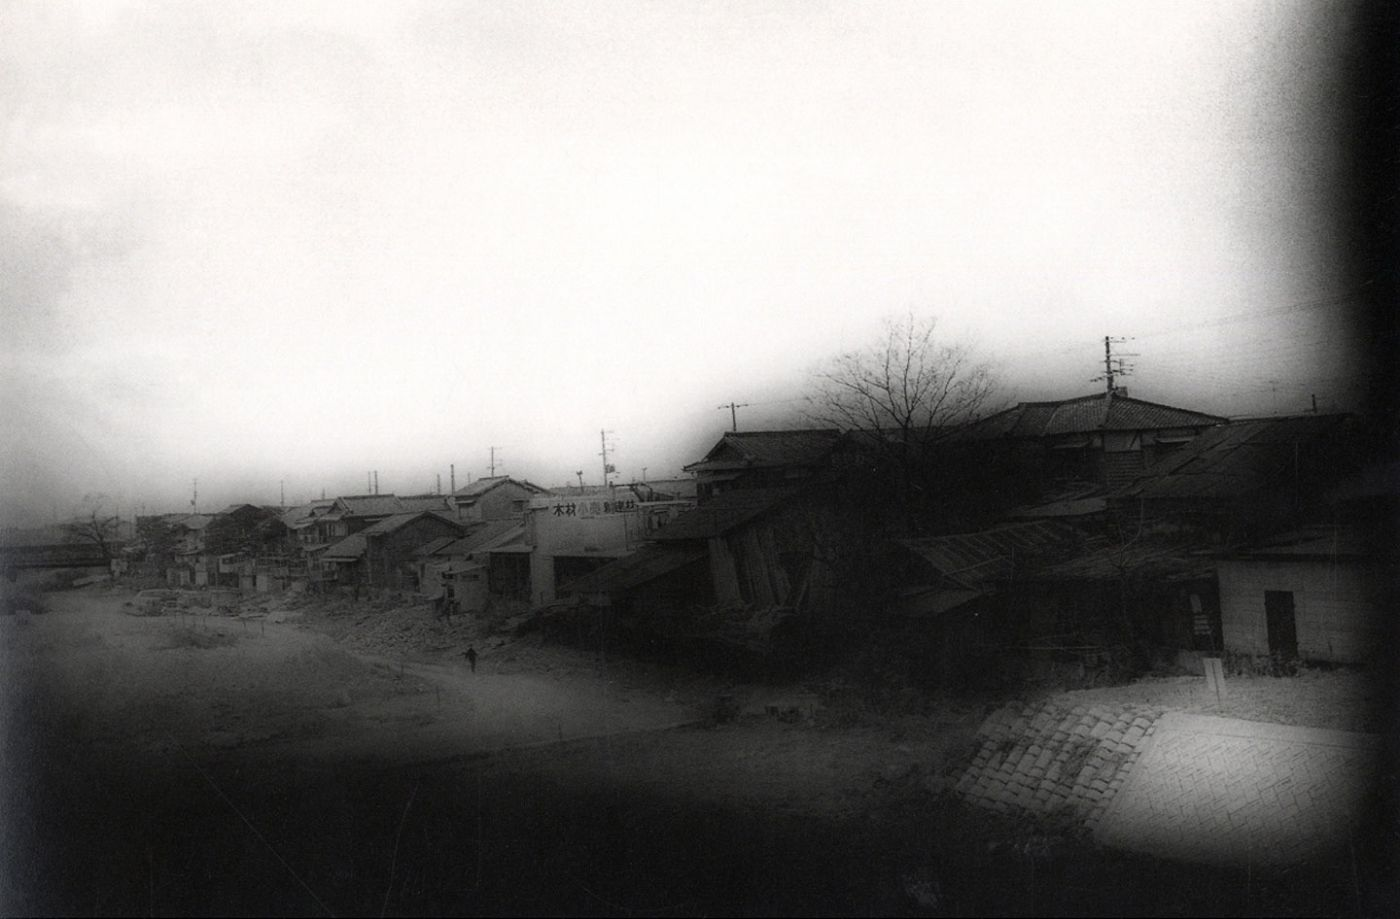 Daido Moriyama: Mizu no Yume (Dreams of Water / Memories) [SIGNED]